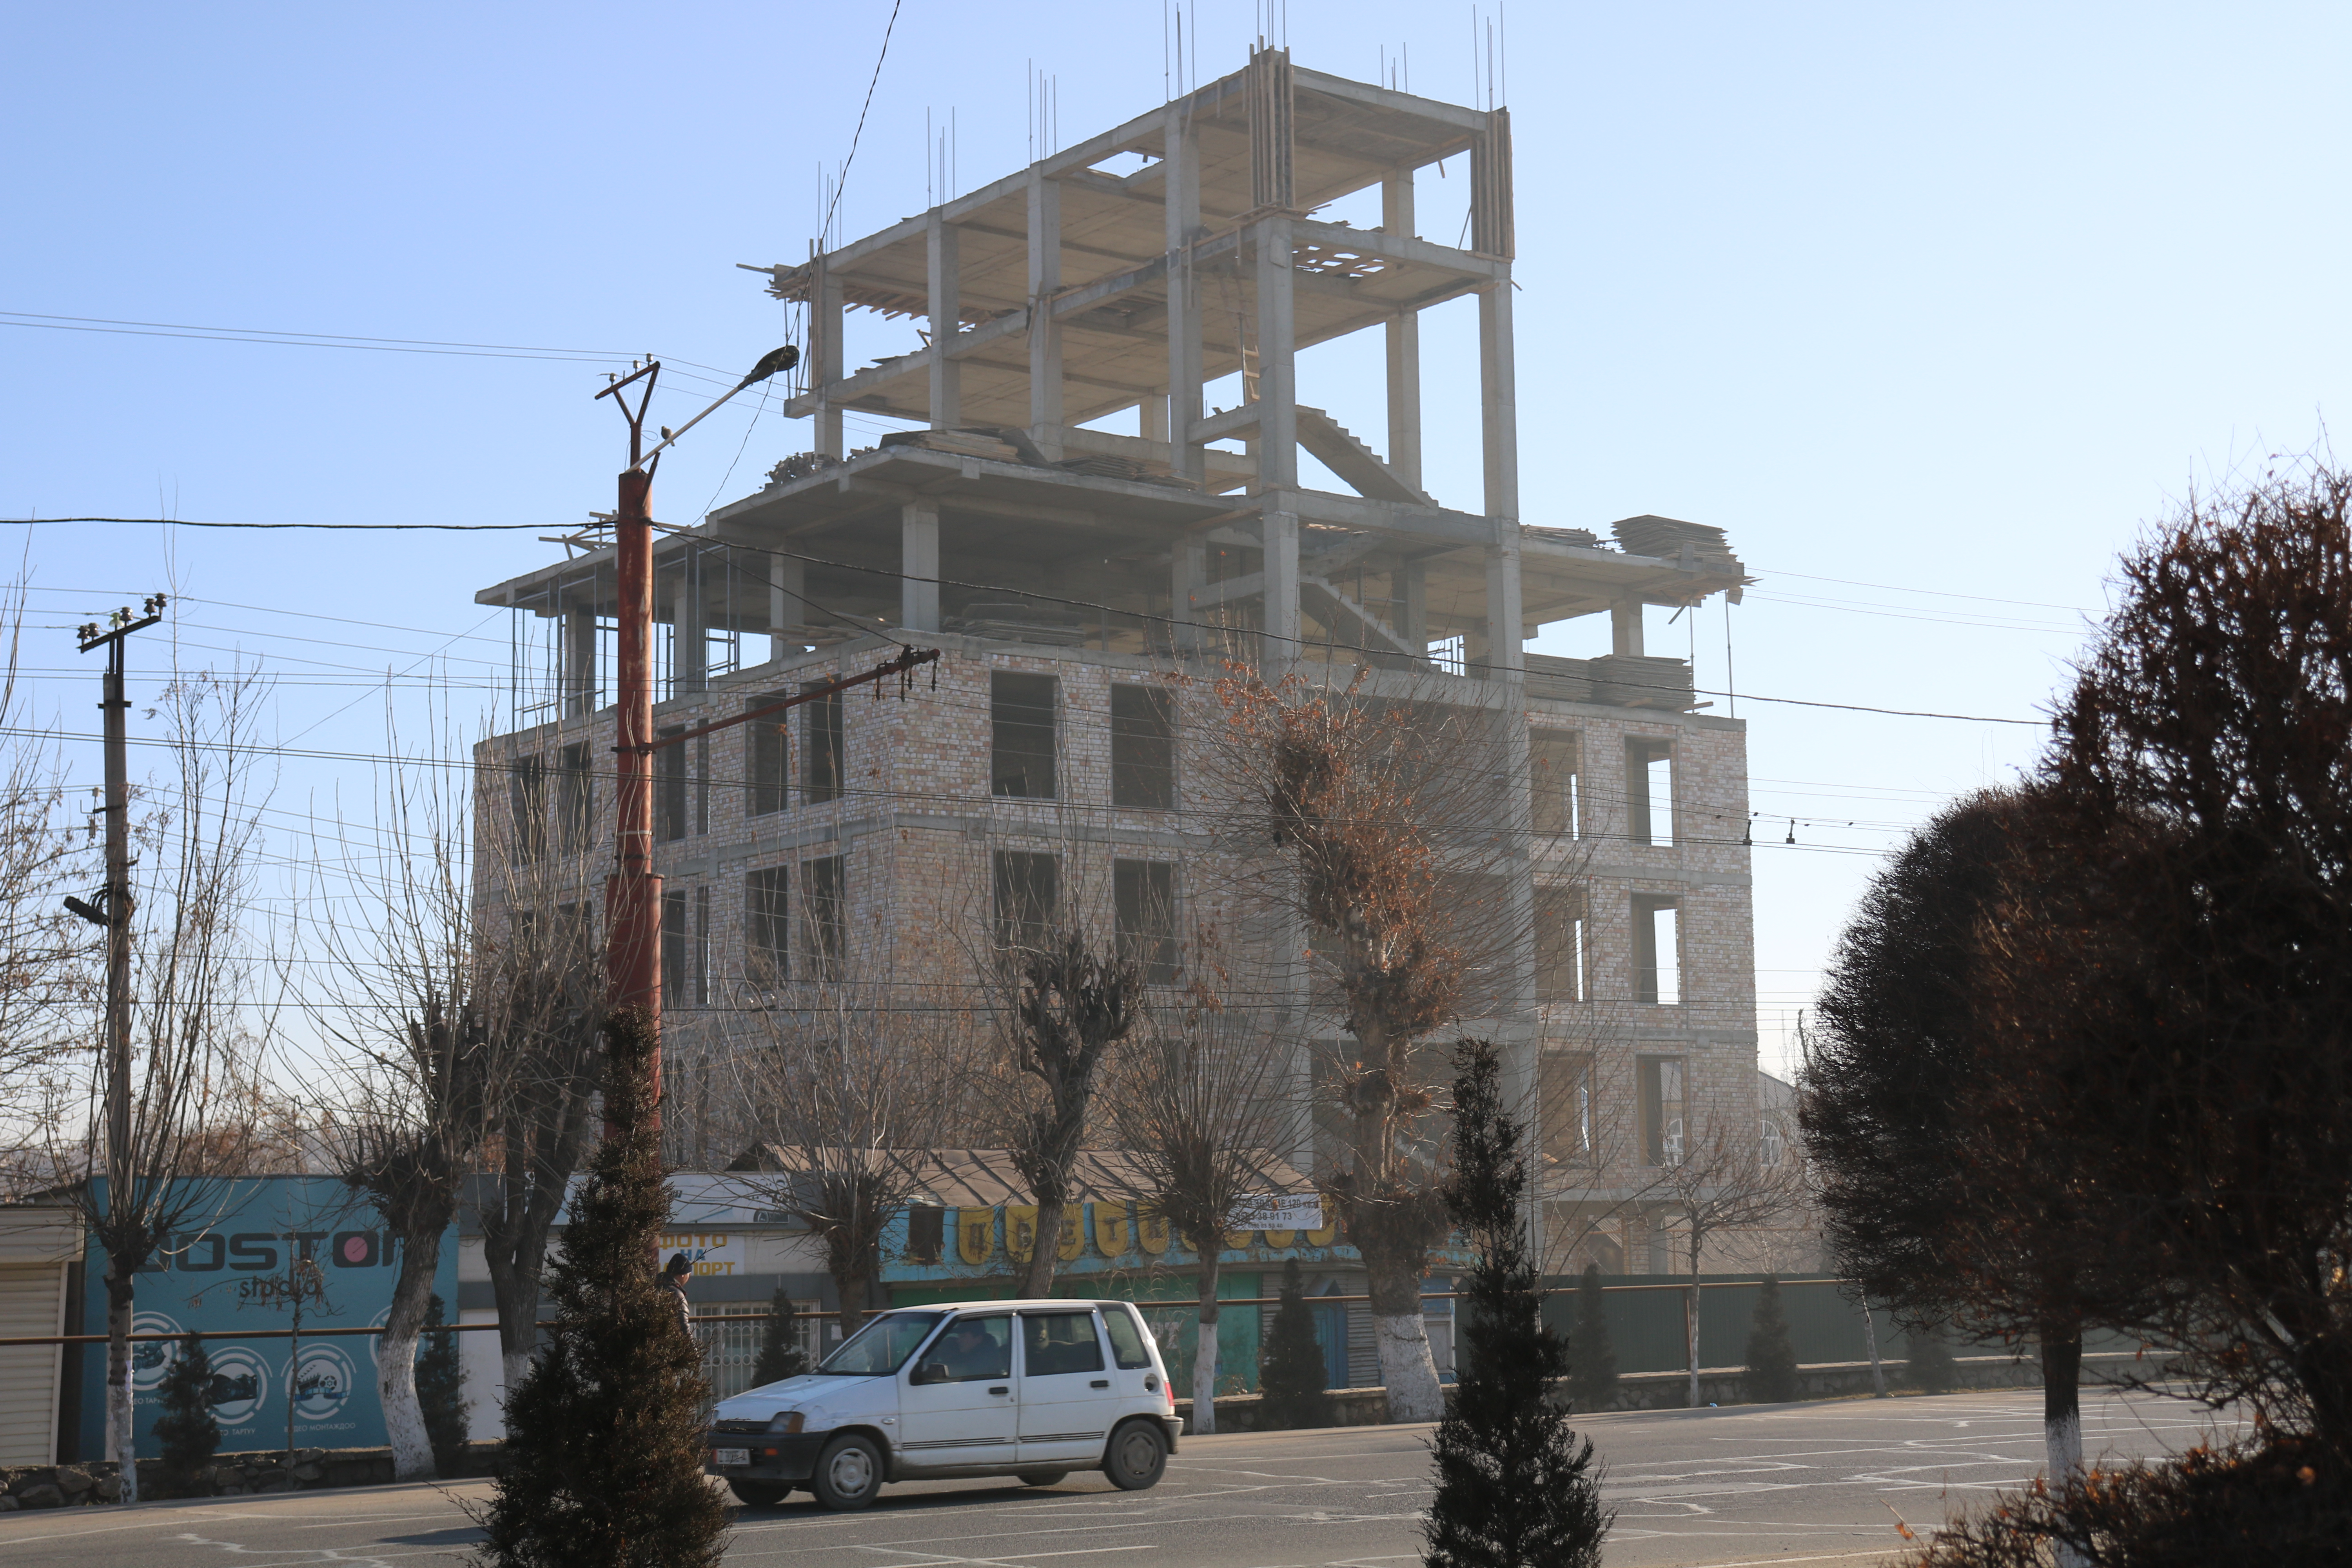 A building in construction in Osh.